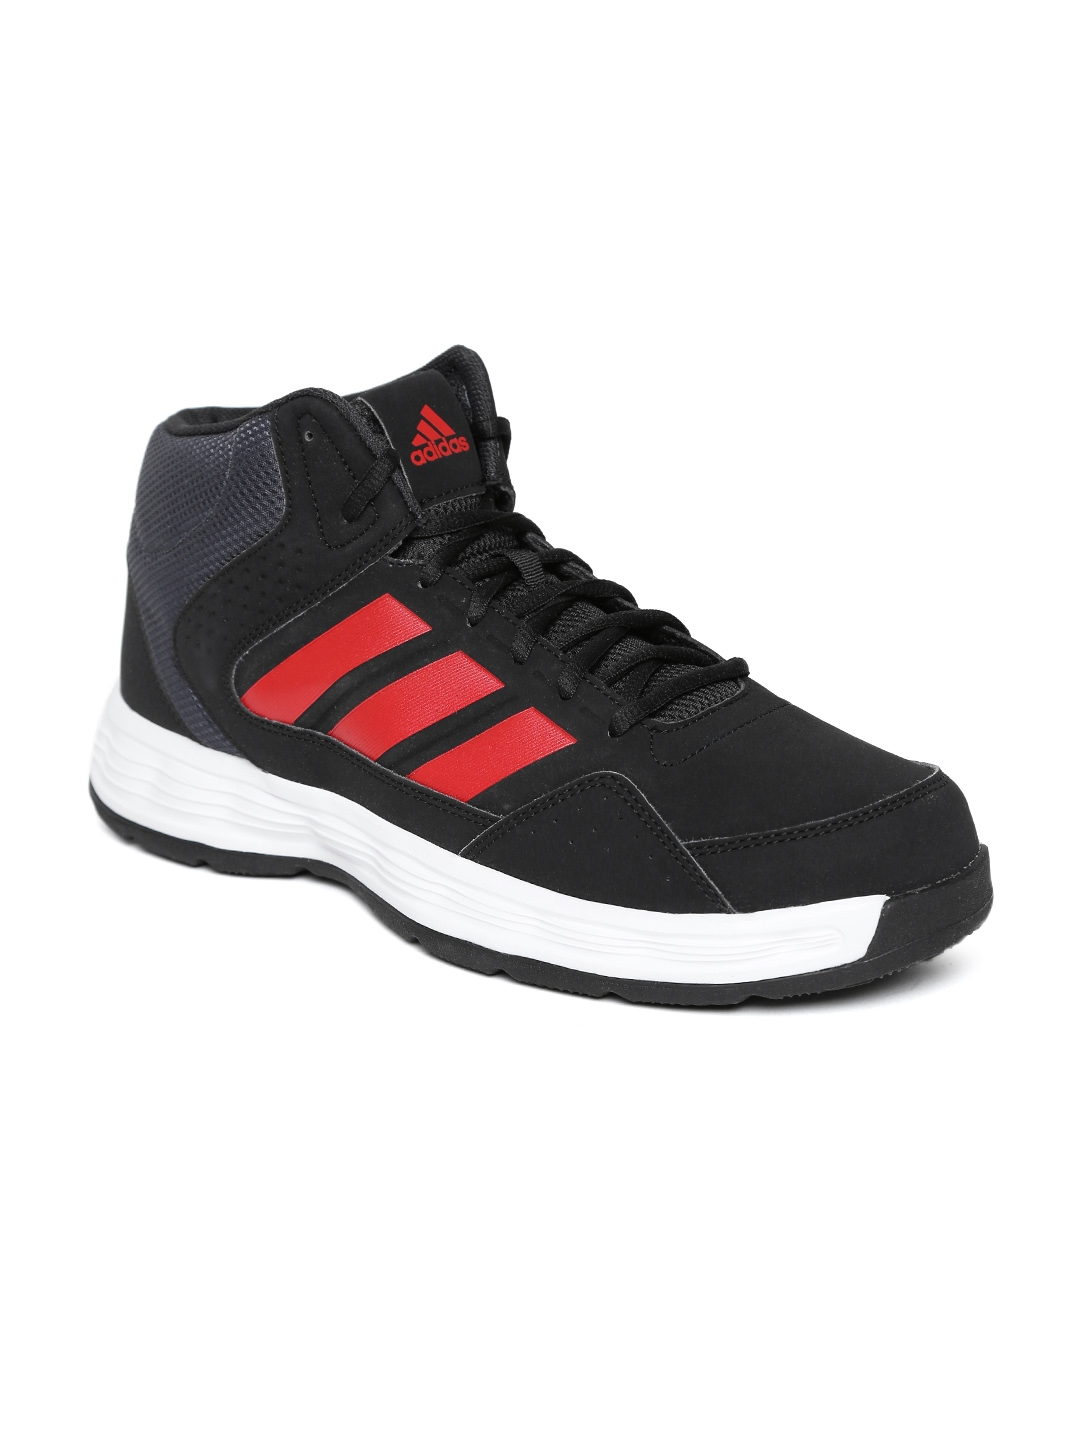 adidas basketball shoes womens. adidas men black rib w mid-top basketball shoes womens